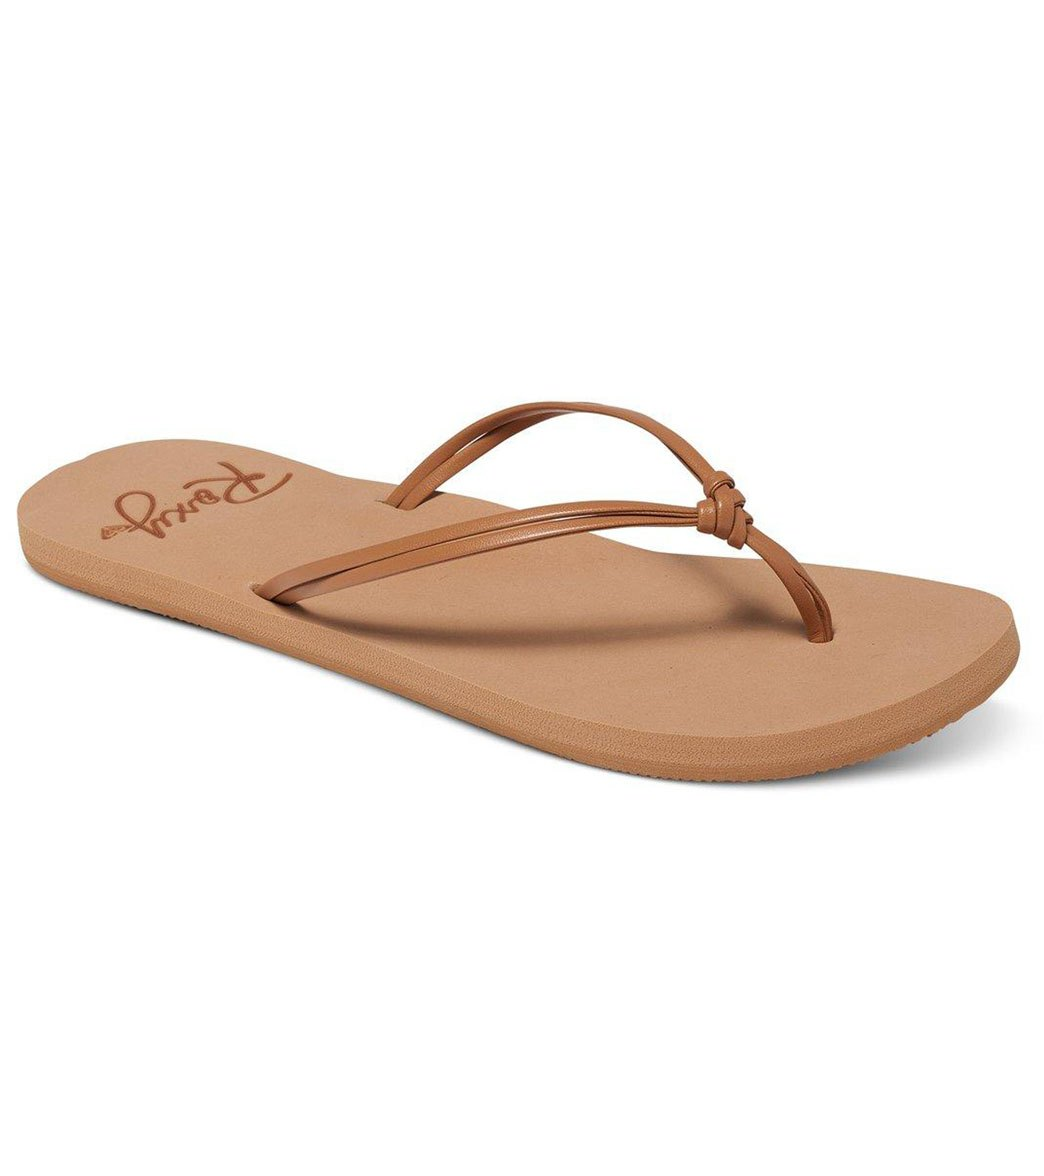 77815a7489b31b Roxy Women s Lahaina II Flip Flop at SwimOutlet.com